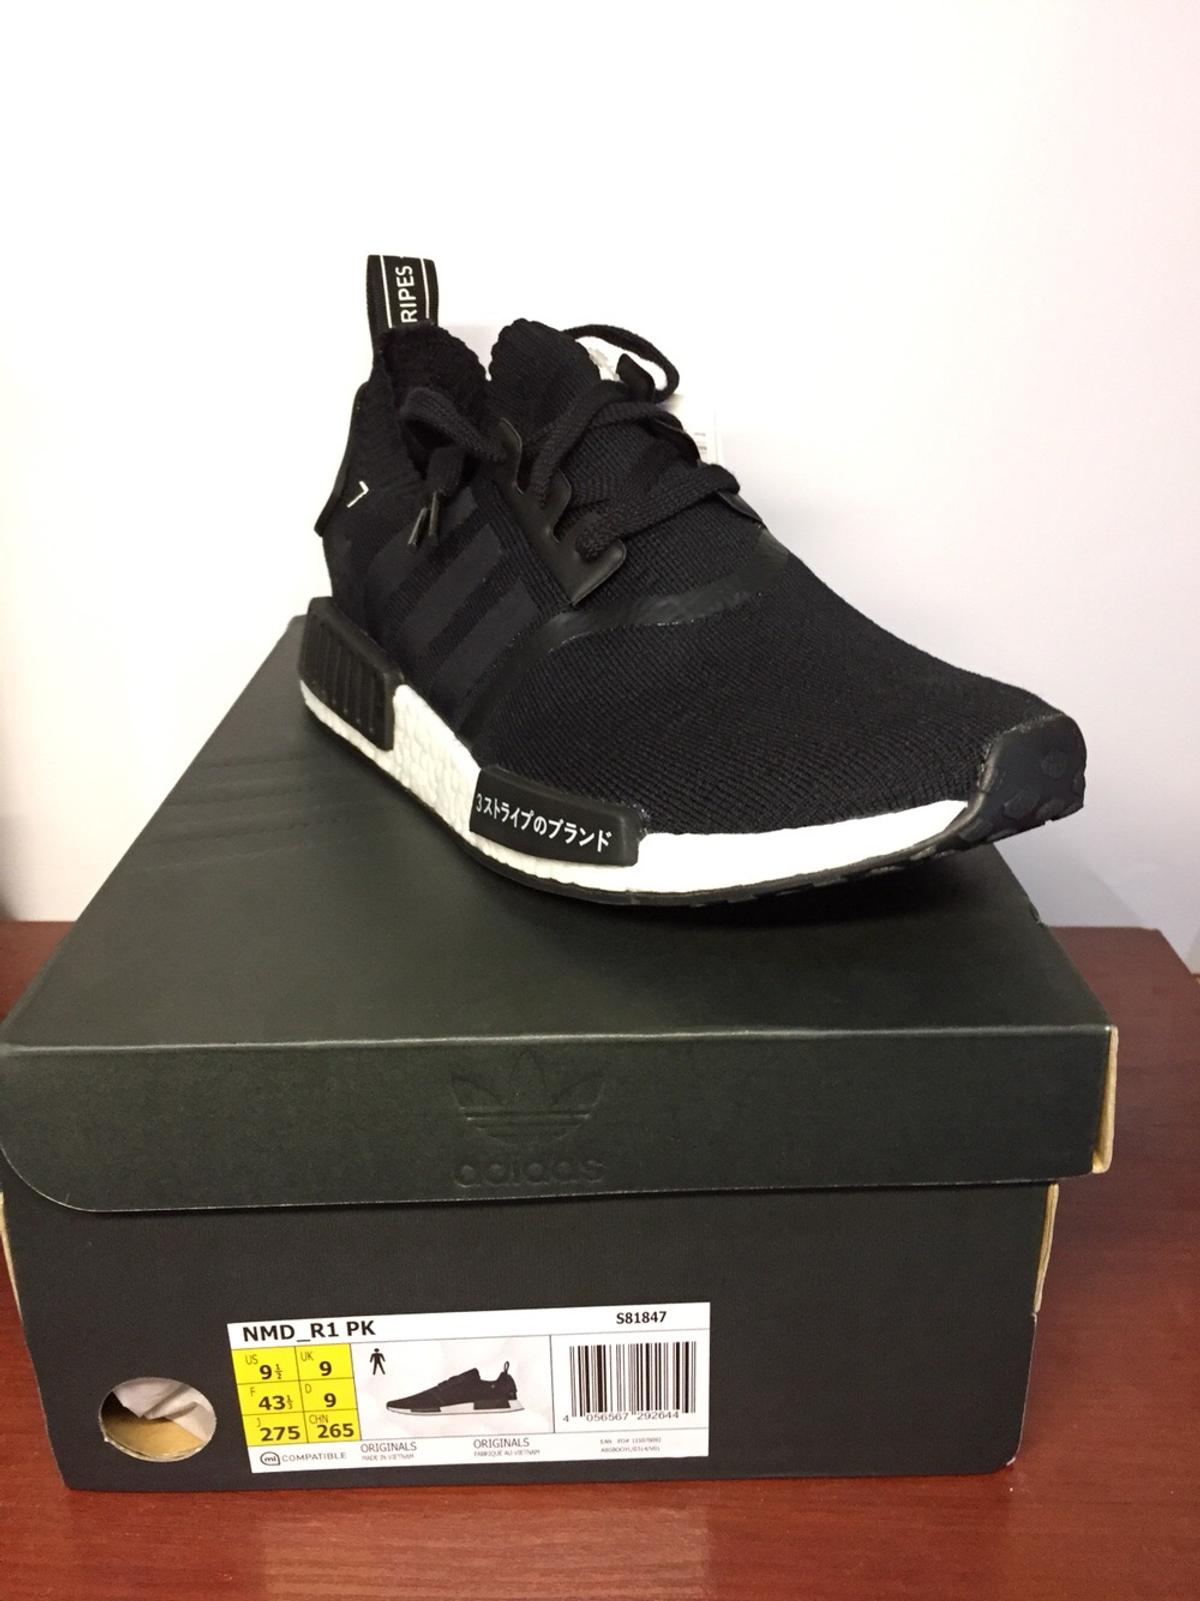 online store d4ab5 86335 Adidas NMD Japan boost in IG3 Ilford for £170.00 for sale ...